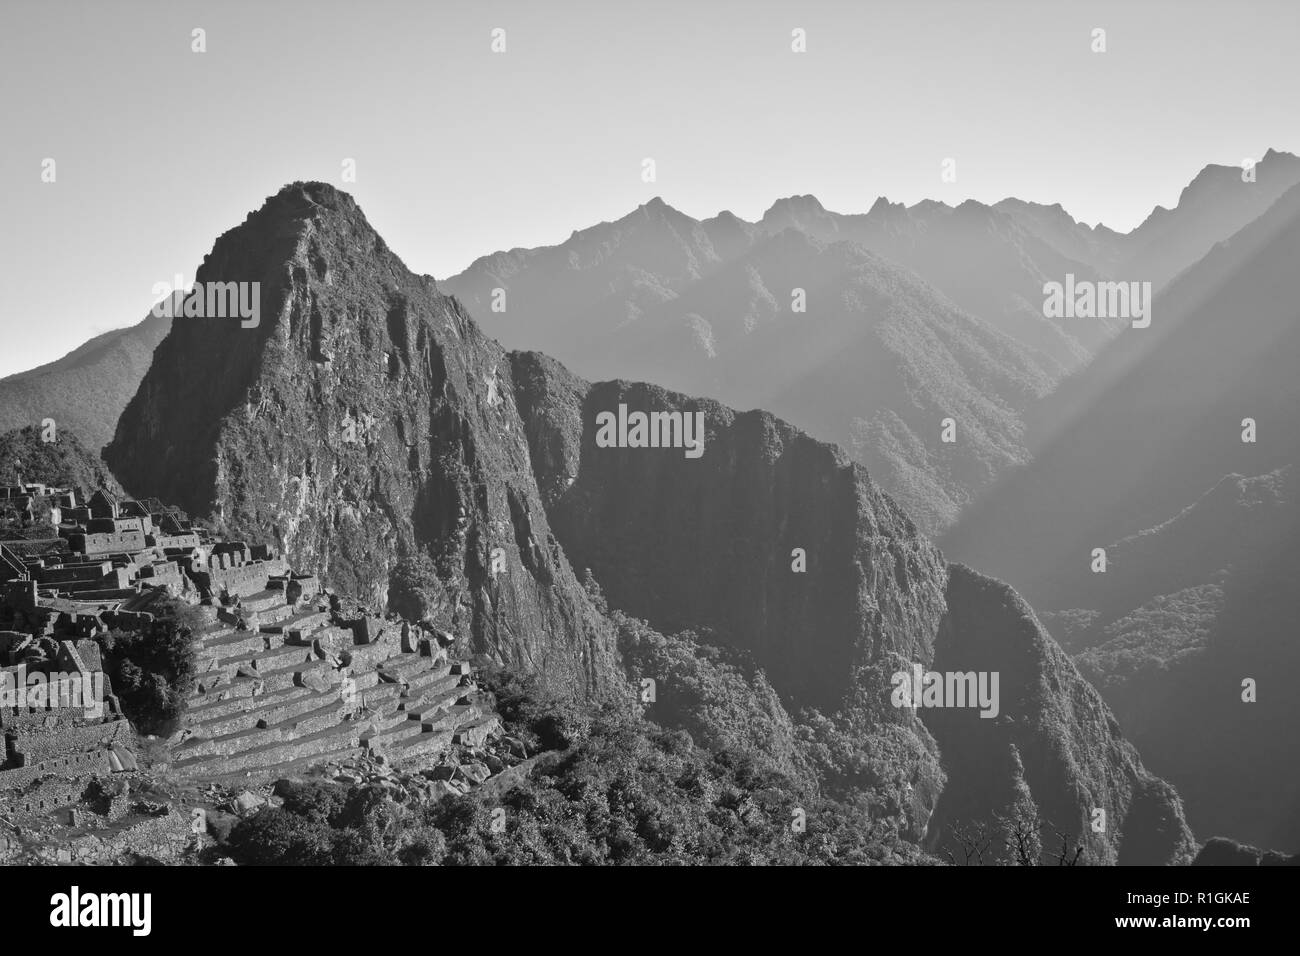 Machu Picchu, an Incan citadel set high in the Andes Mountains, Peru, above the Urubamba River valley. Built in the 15th century and later abandonded - Stock Image